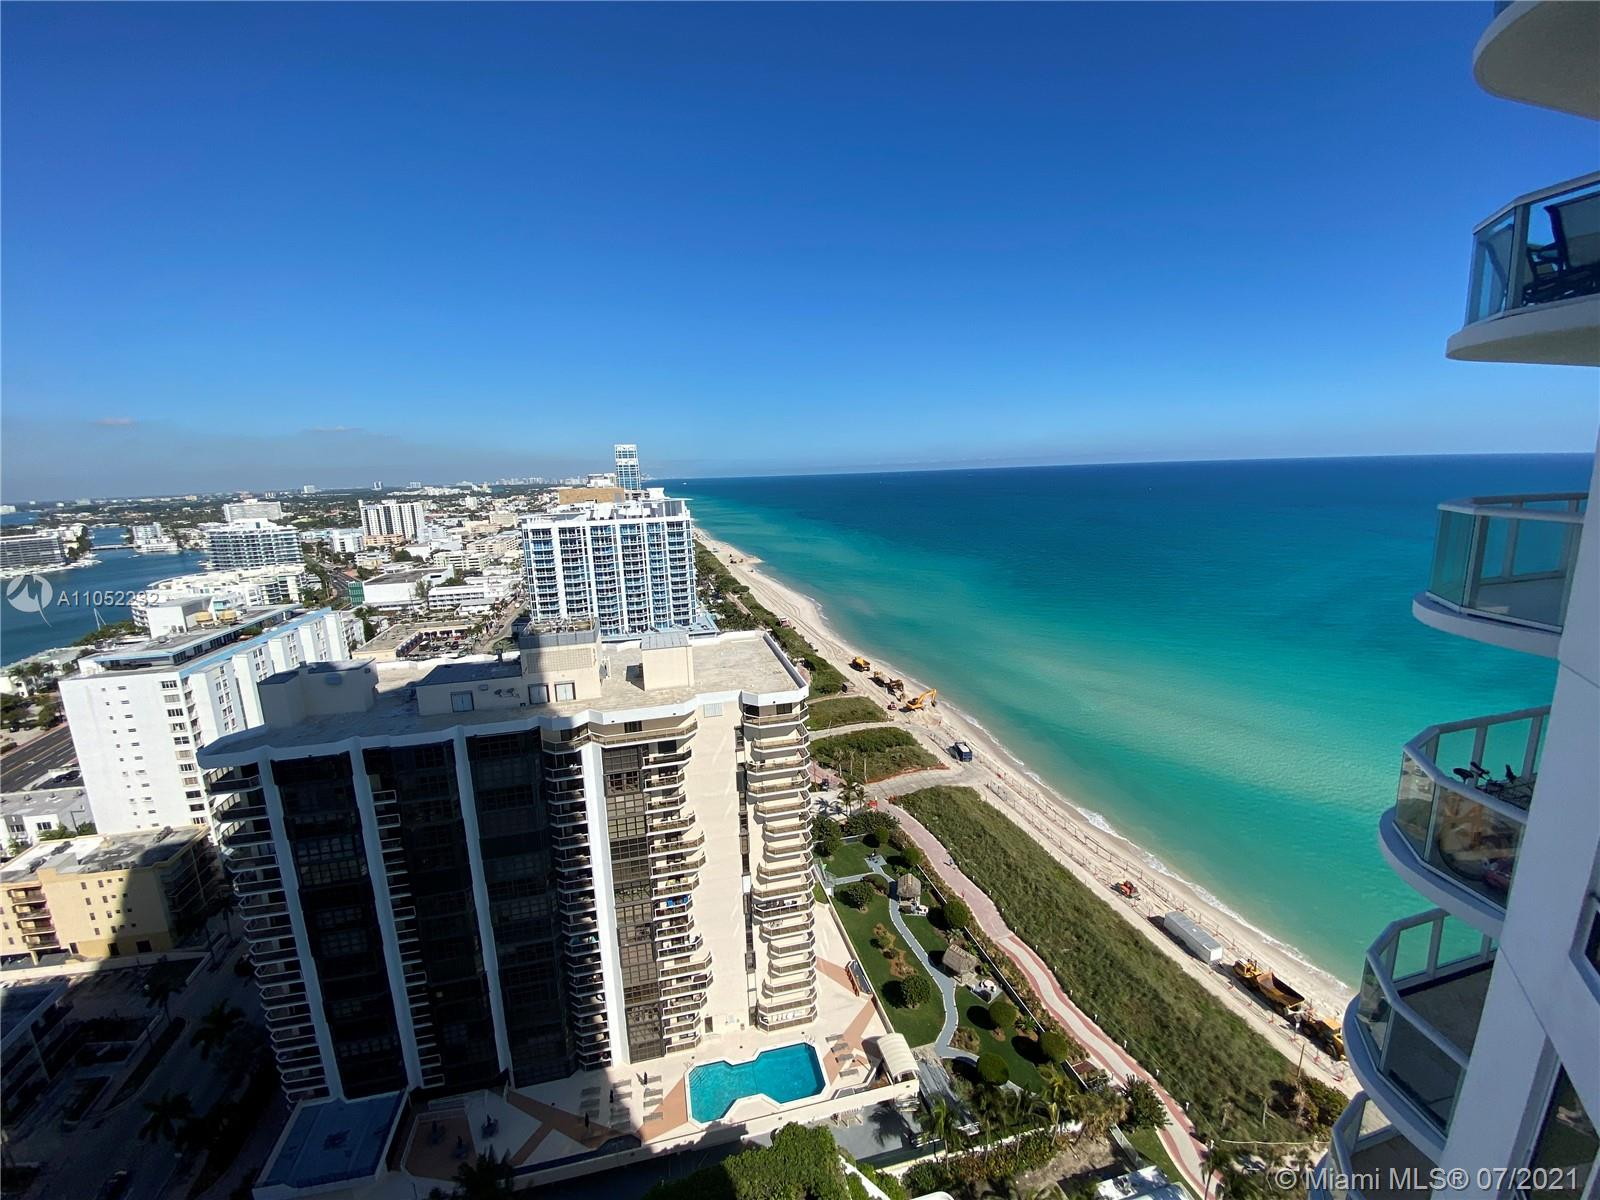 Amazing ocean and intercostal views from this contemporary decorated and furnished unit. The building allows 12 rentals a year and offering luxury amenities pool, jacuzzi, tennis, sauna, gym, 24 hr security and valet close to South Beach, shopping's & restaurants. Optional owner sell cabana. Cable TV and beach service.